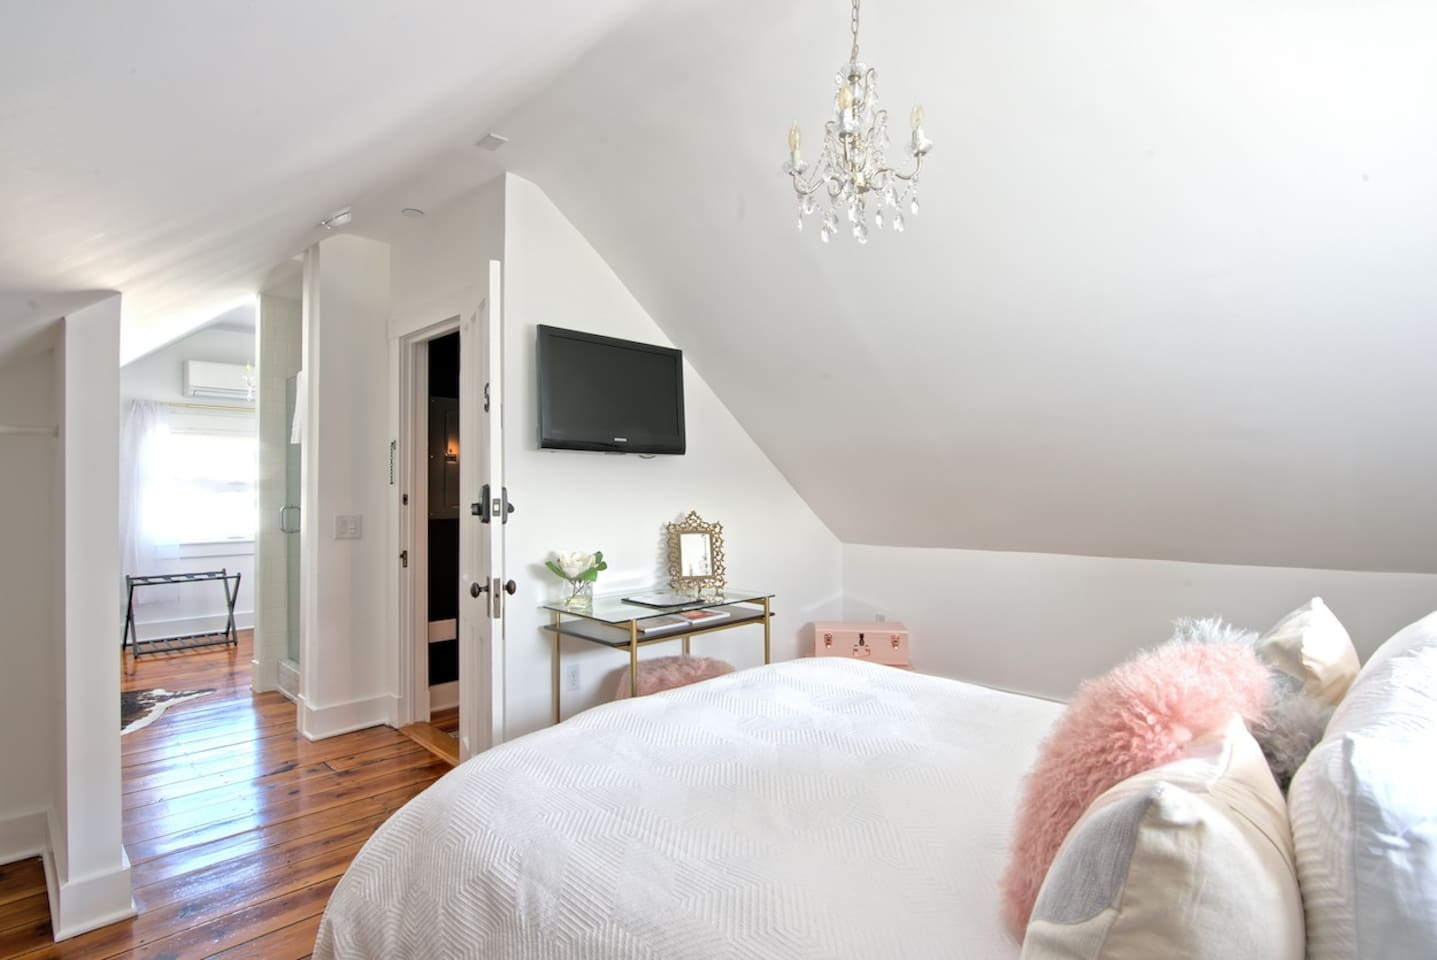 Queen size bed with super luxury bedding. This entire room is very special and well thought out. Nice open airy feeling and many decorative touches.